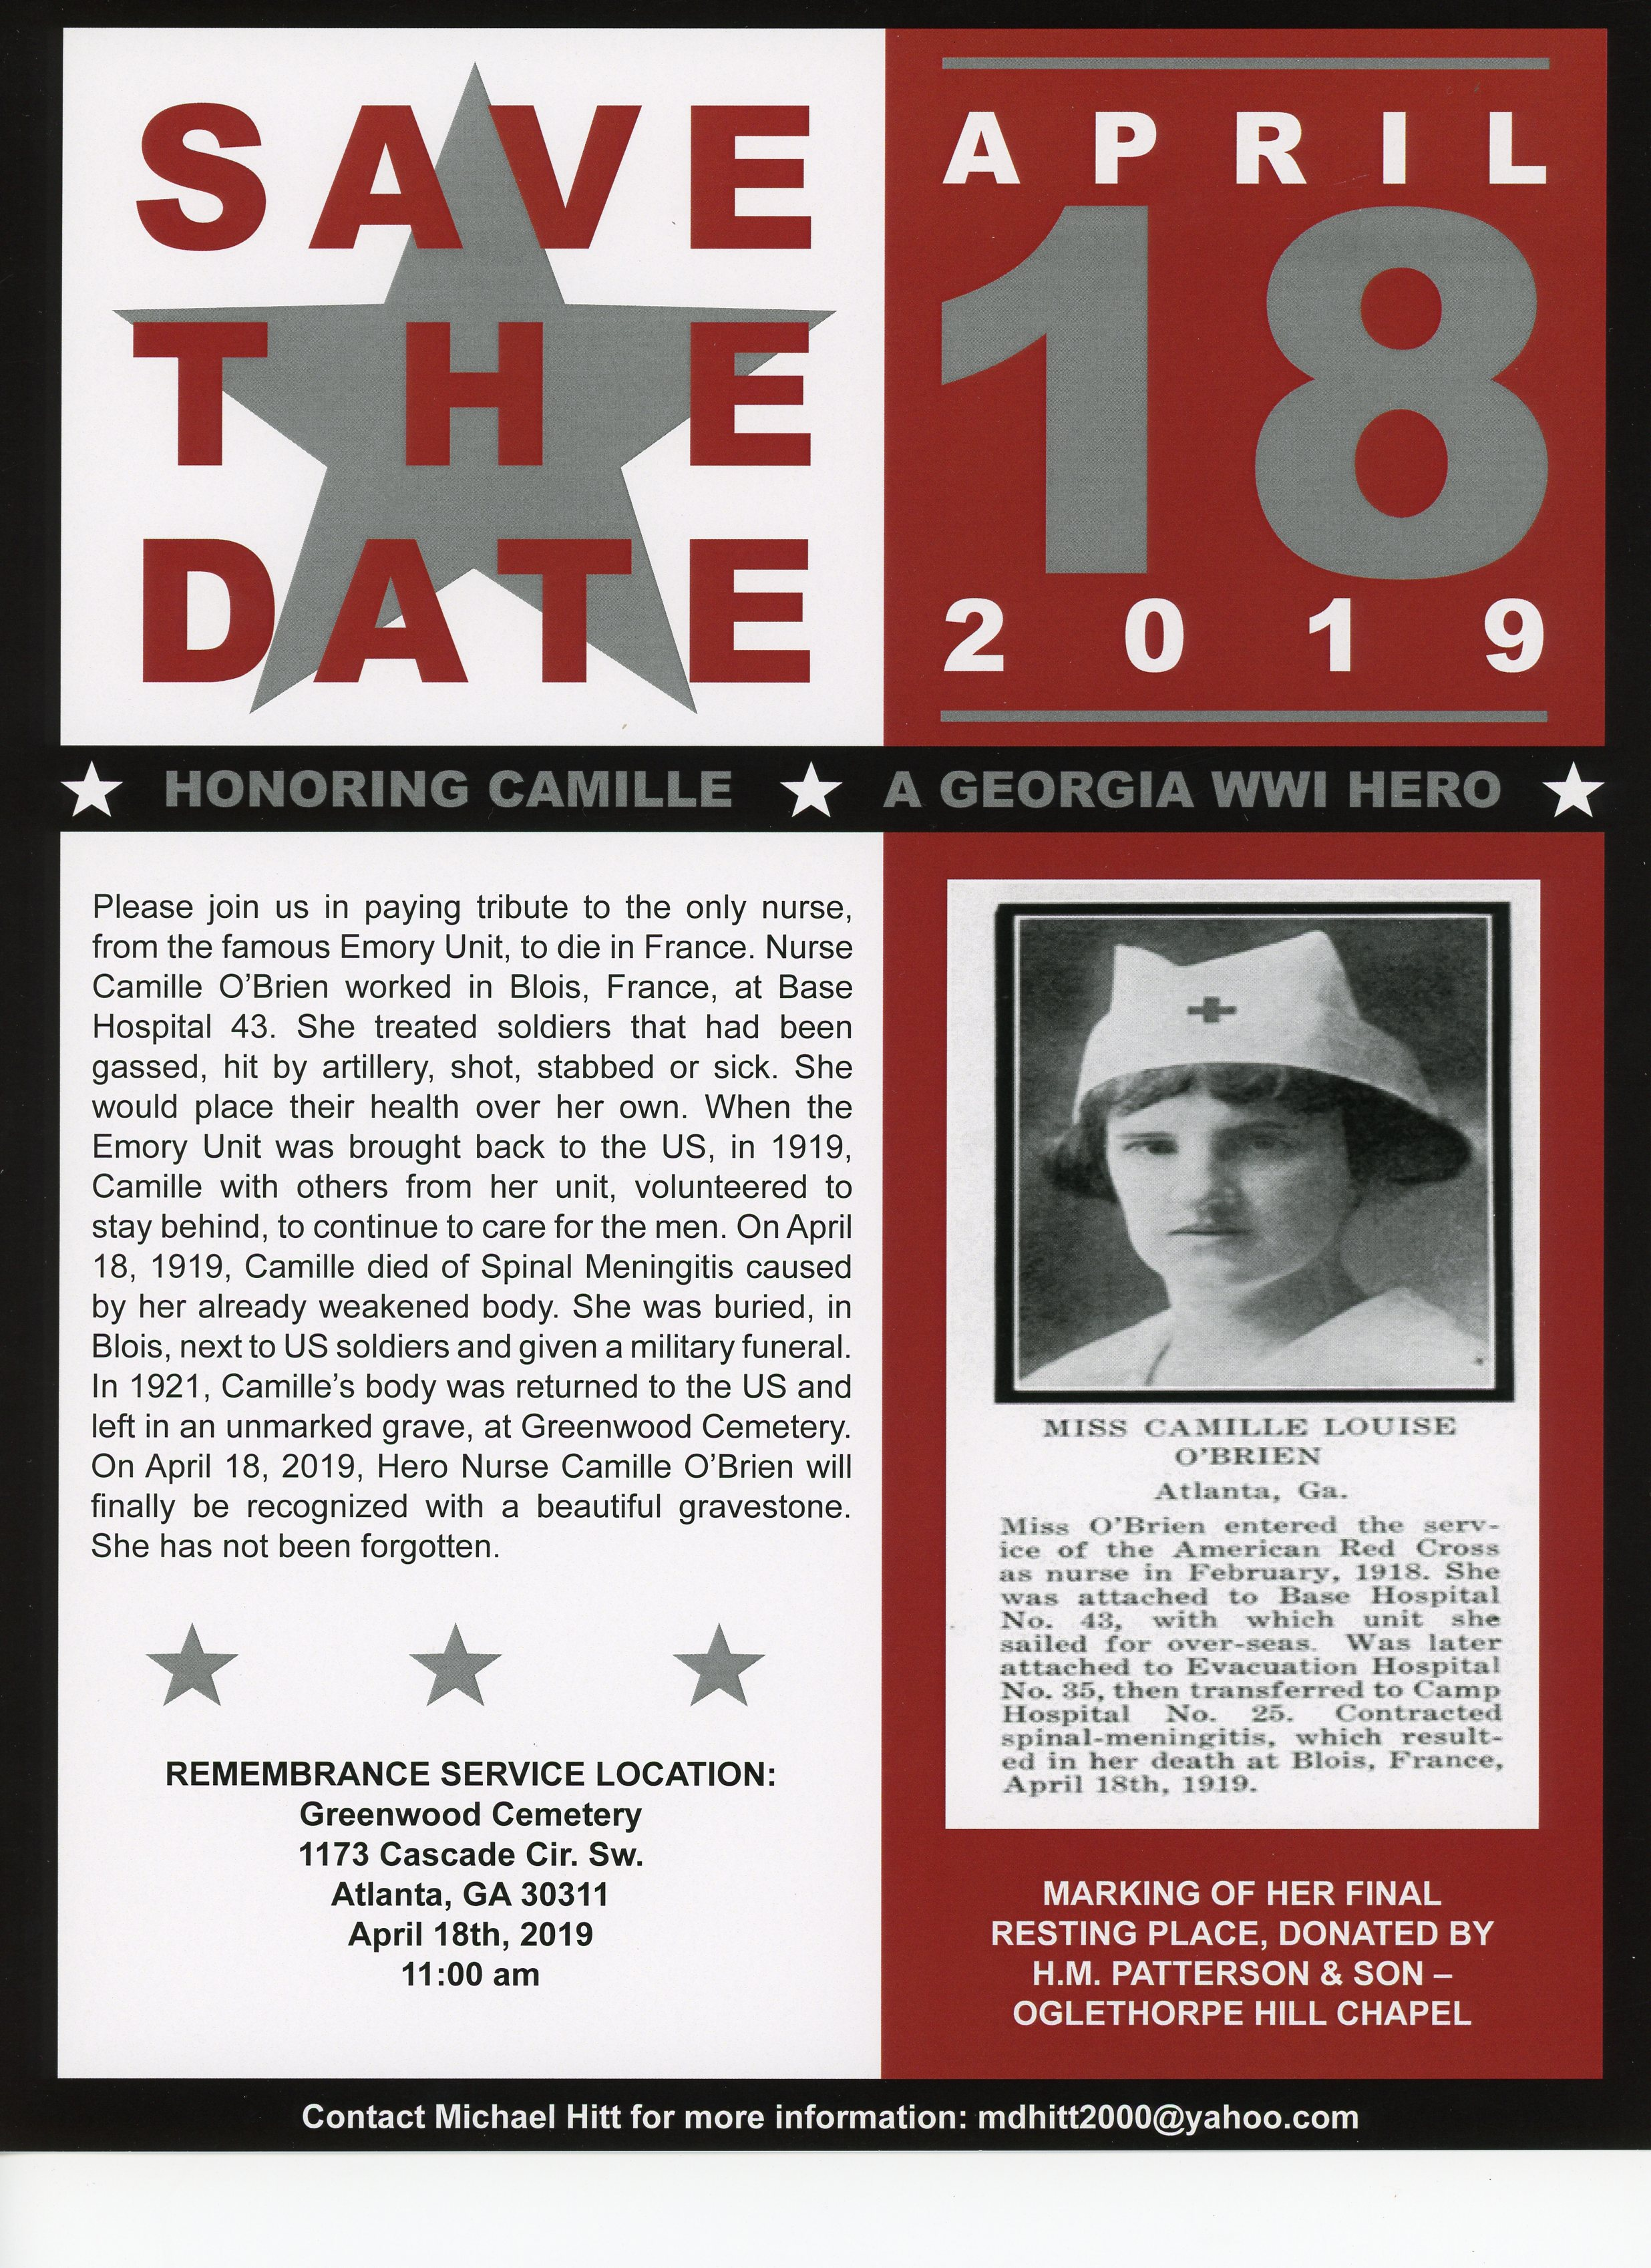 Save the Date poster of the Camille O'Brien ceremony